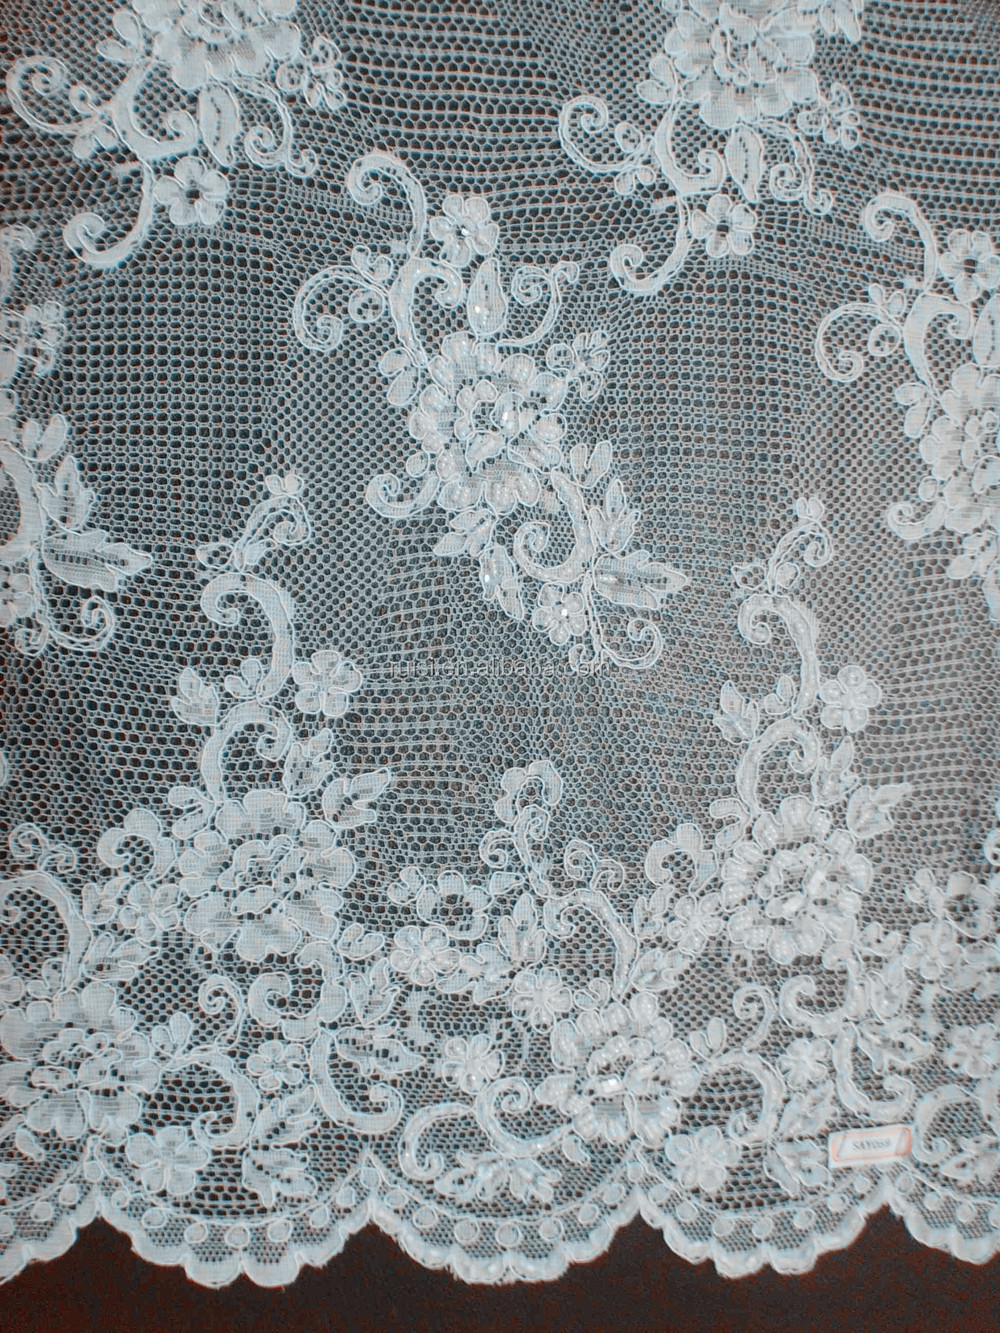 2017 Nigerian white beautiful jacquard fabric soft comfort wedding jacquard lace